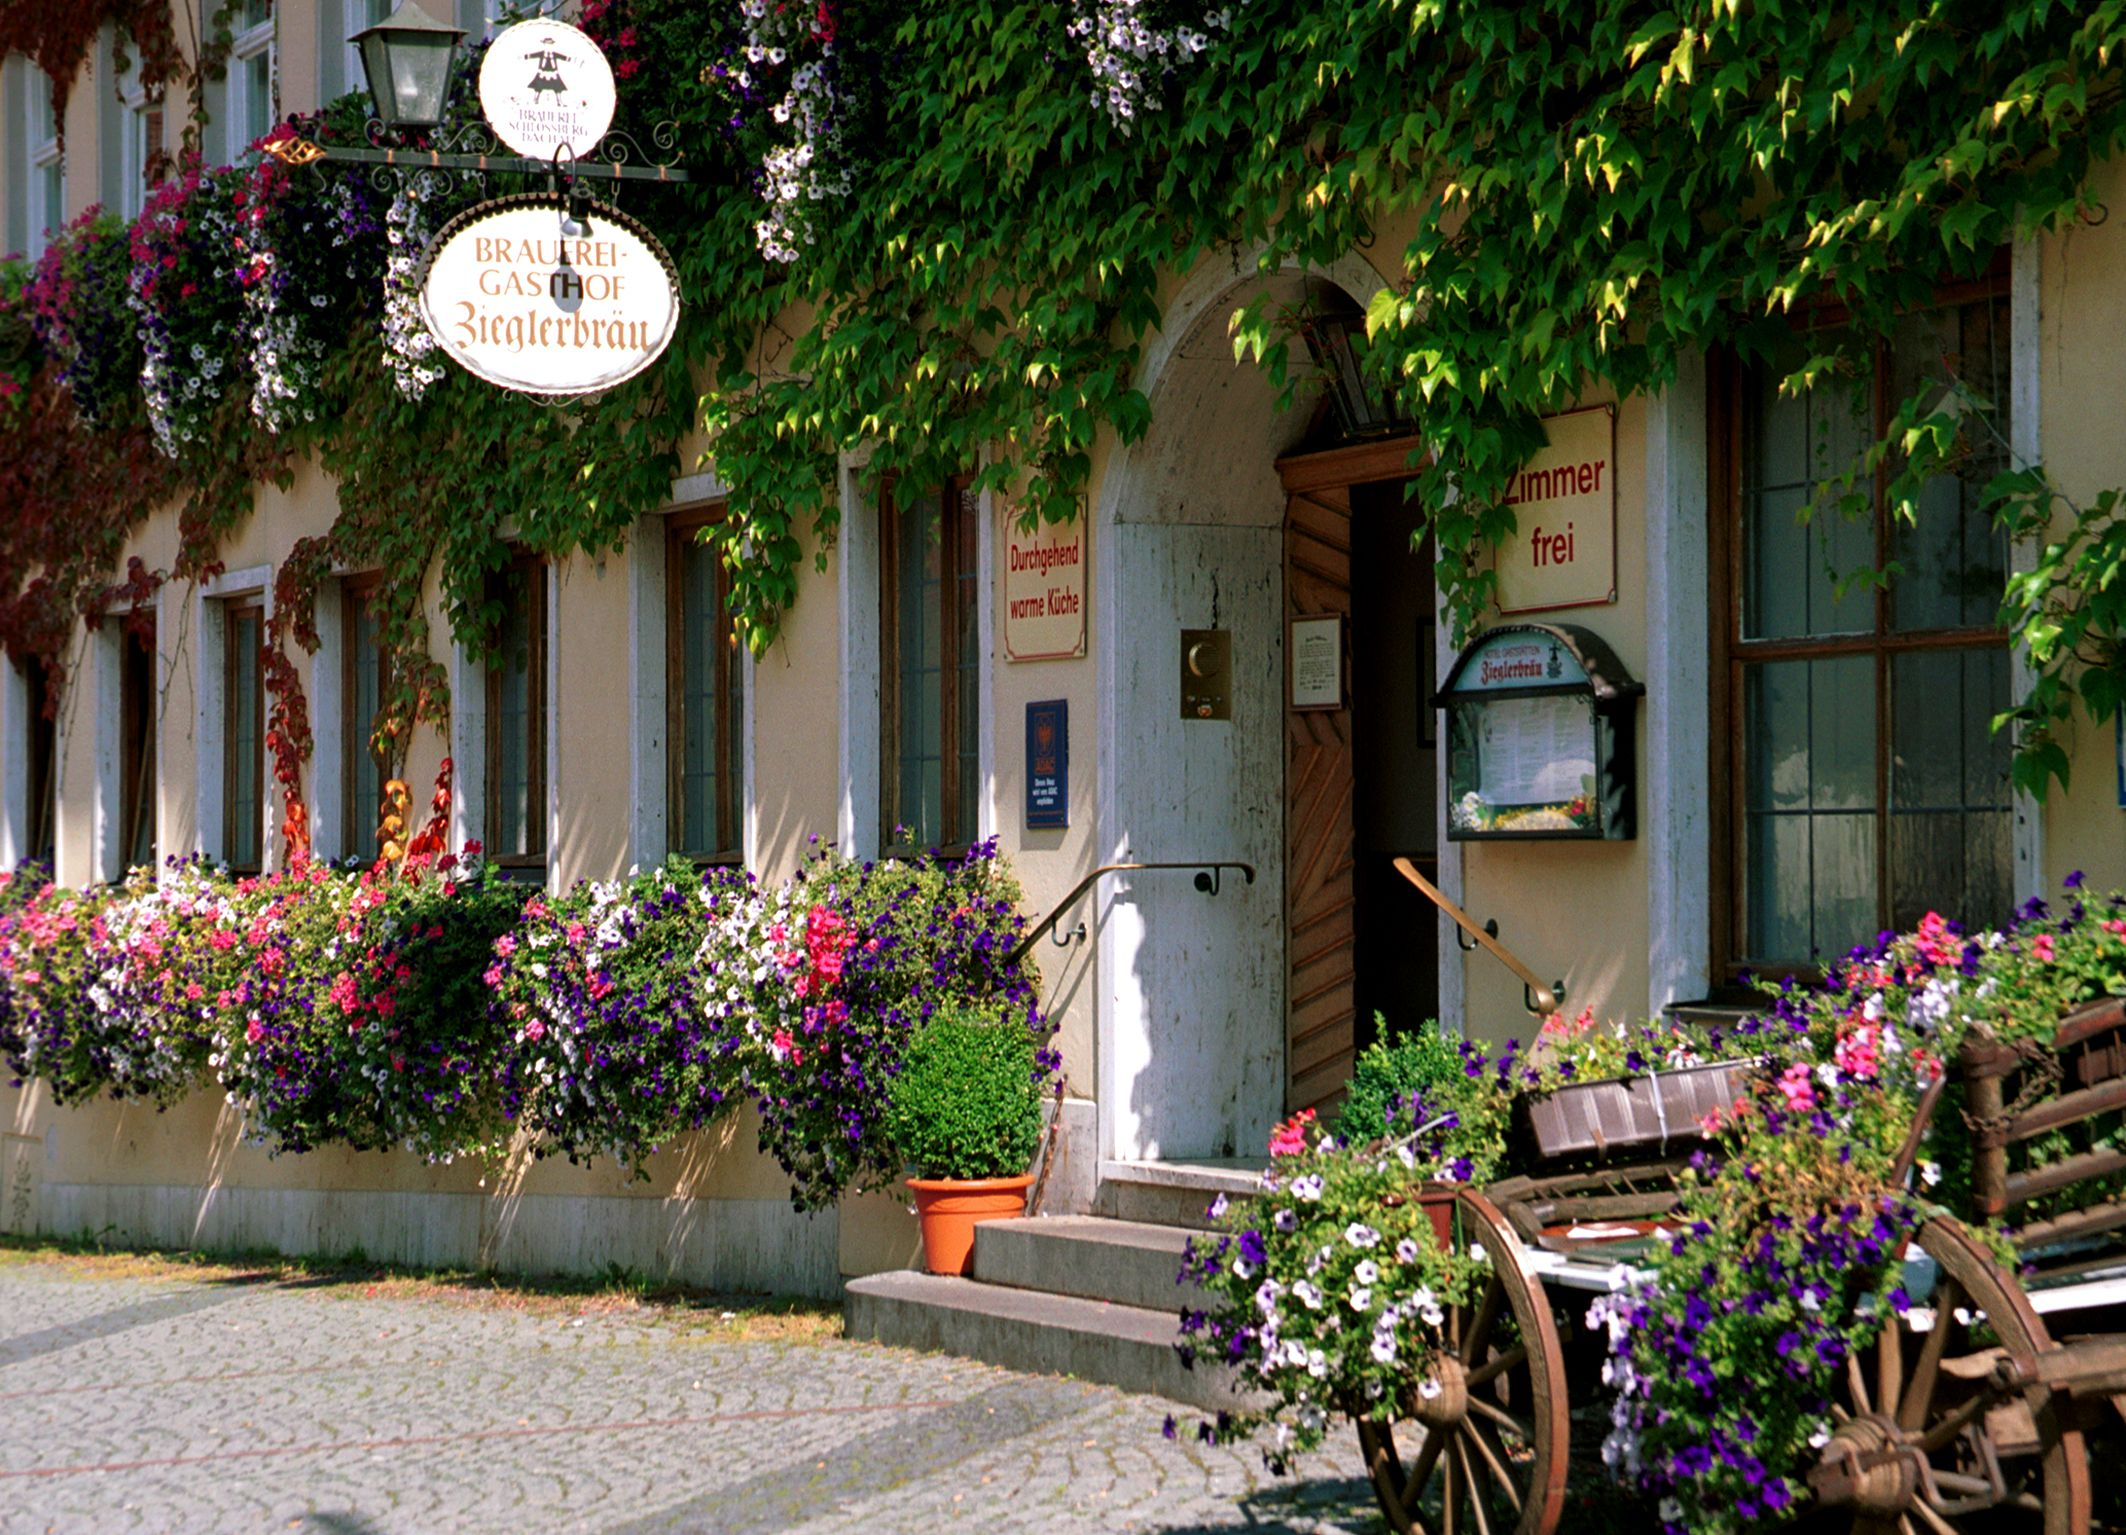 Photo of exterior view of Altstadthotel Zieglerbräu with blooming flower boxes and entrance door, photo: Altstadthotel Zieglerbräu